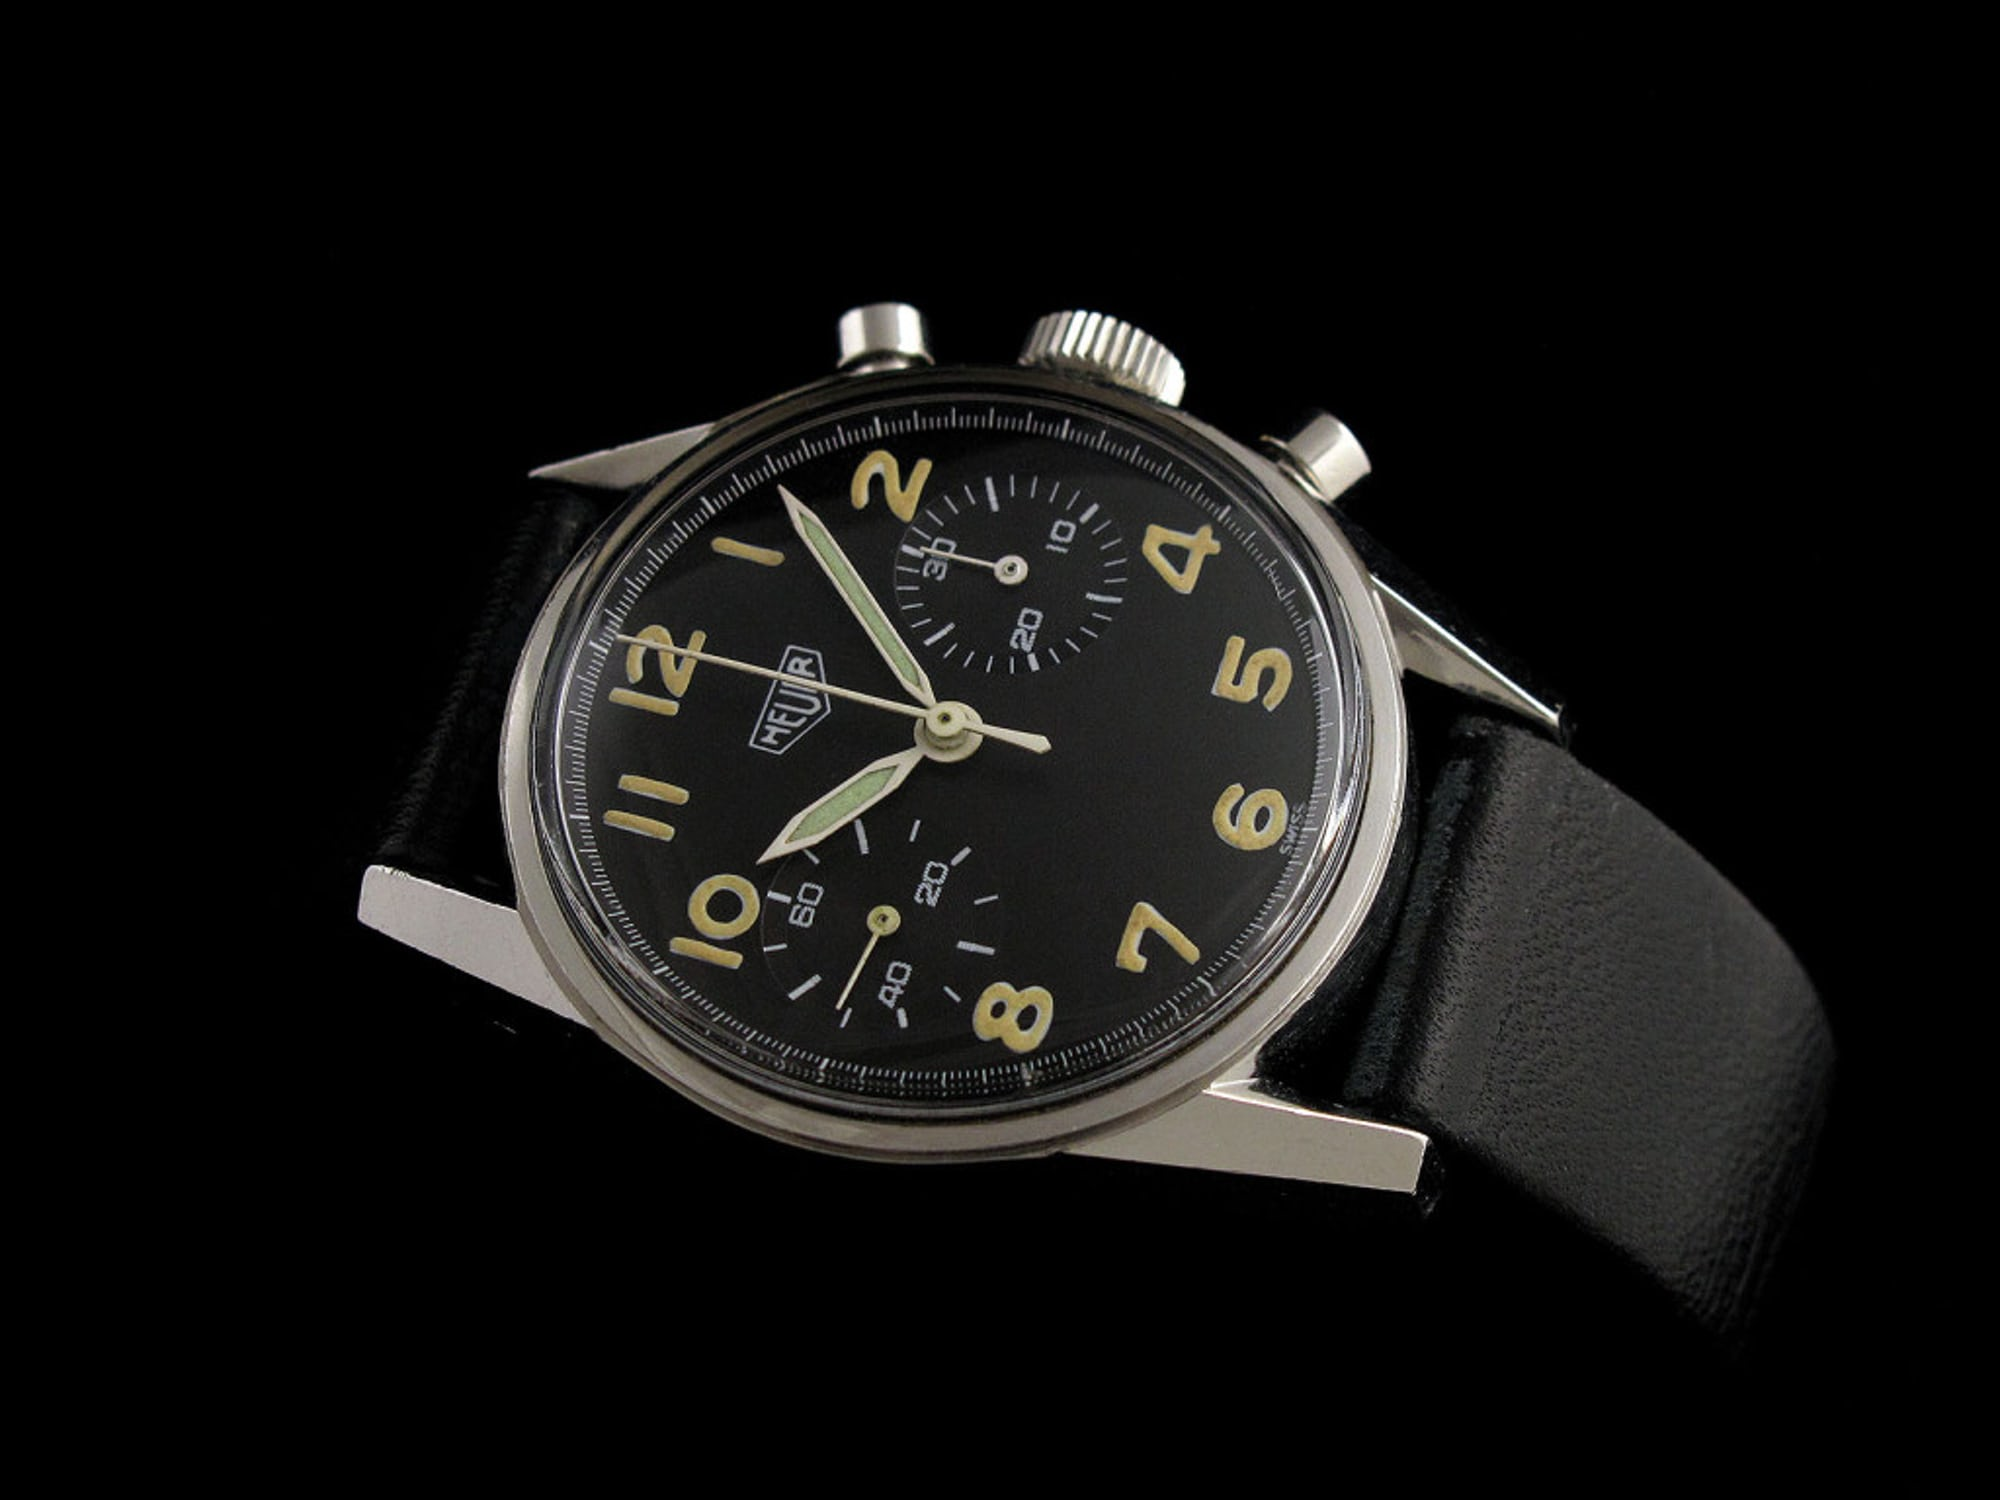 Heuer Carrera Reference 7753 Military Belgian bring a loupe: a transitional jean richard airstar, a 'big bubbleback' rolex ref. 6106, a military heuer carrera ref. 7753, and more Bring a Loupe: A Transitional Jean Richard Airstar, A 'Big Bubbleback' Rolex Ref. 6106, A Military Heuer Carrera Ref. 7753, And More Heuer belgian